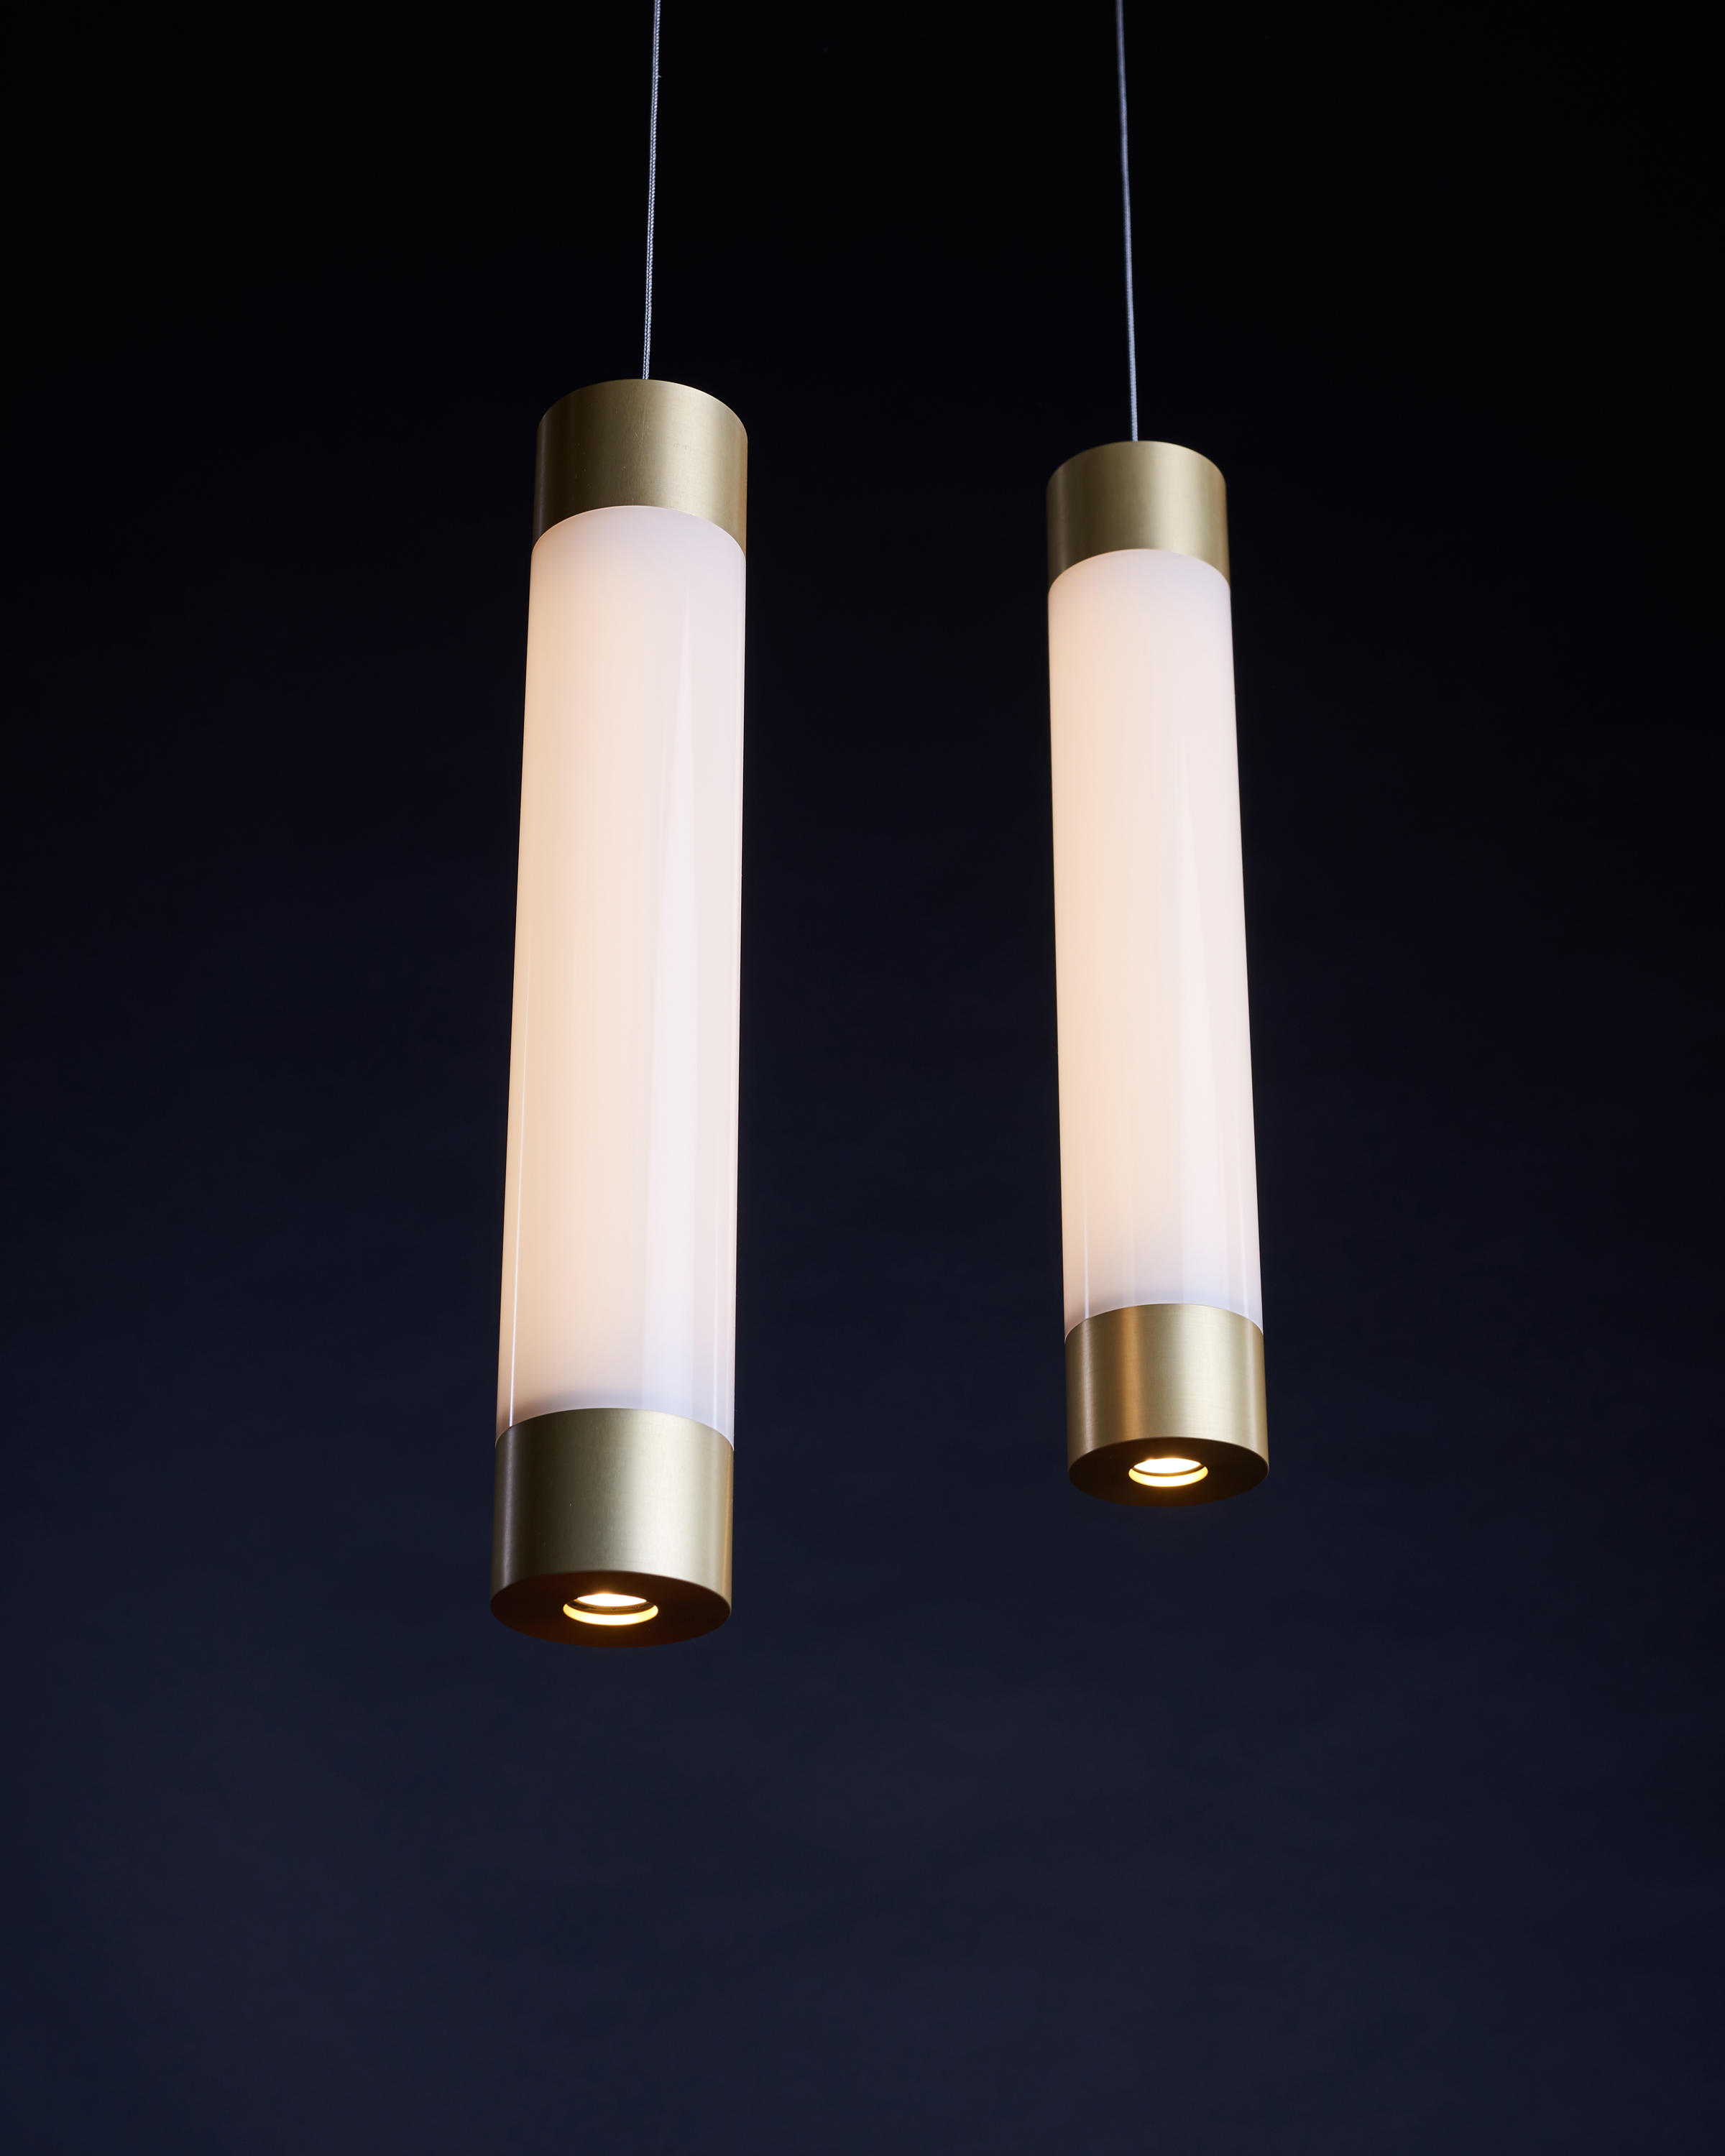 mega fuse general lighting from karice architonic rh architonic com Ceiling Lights blown fuse light fixture